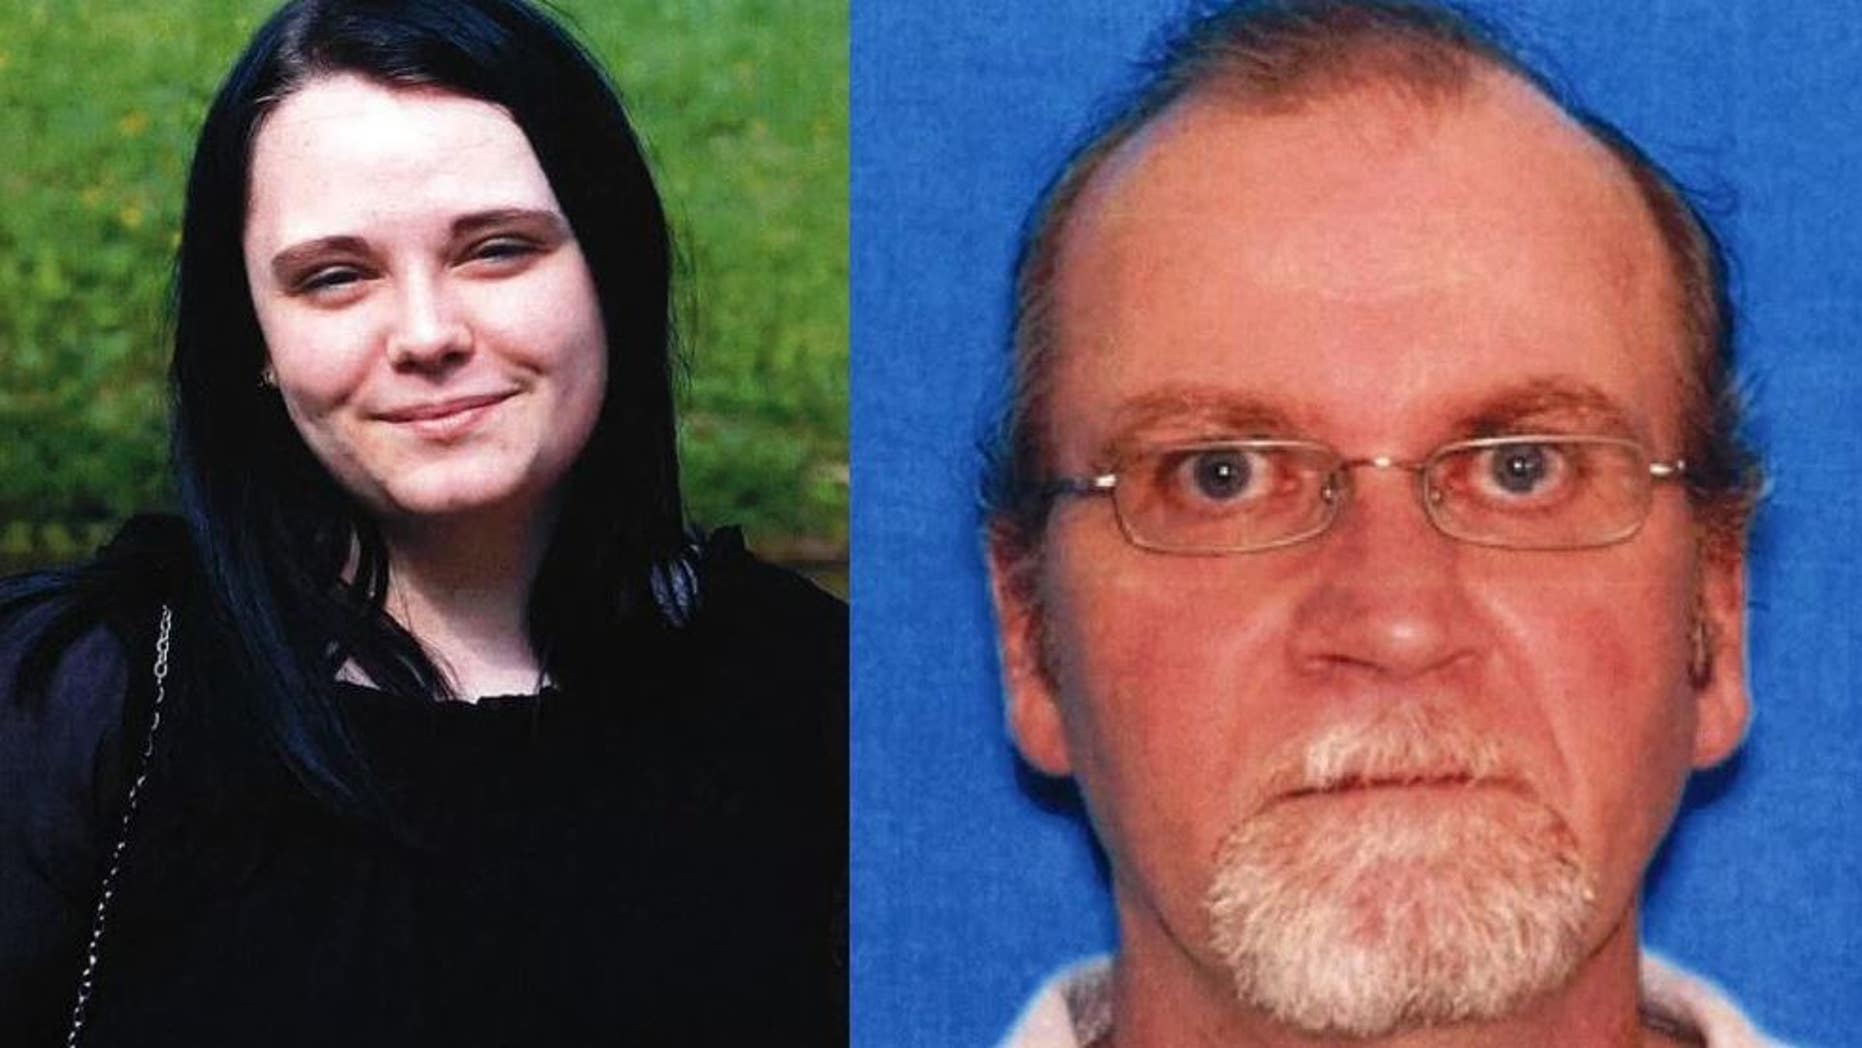 The FBI said 17-year-old Grace Galliher was traveling with a 52-year-old Richard Tester.